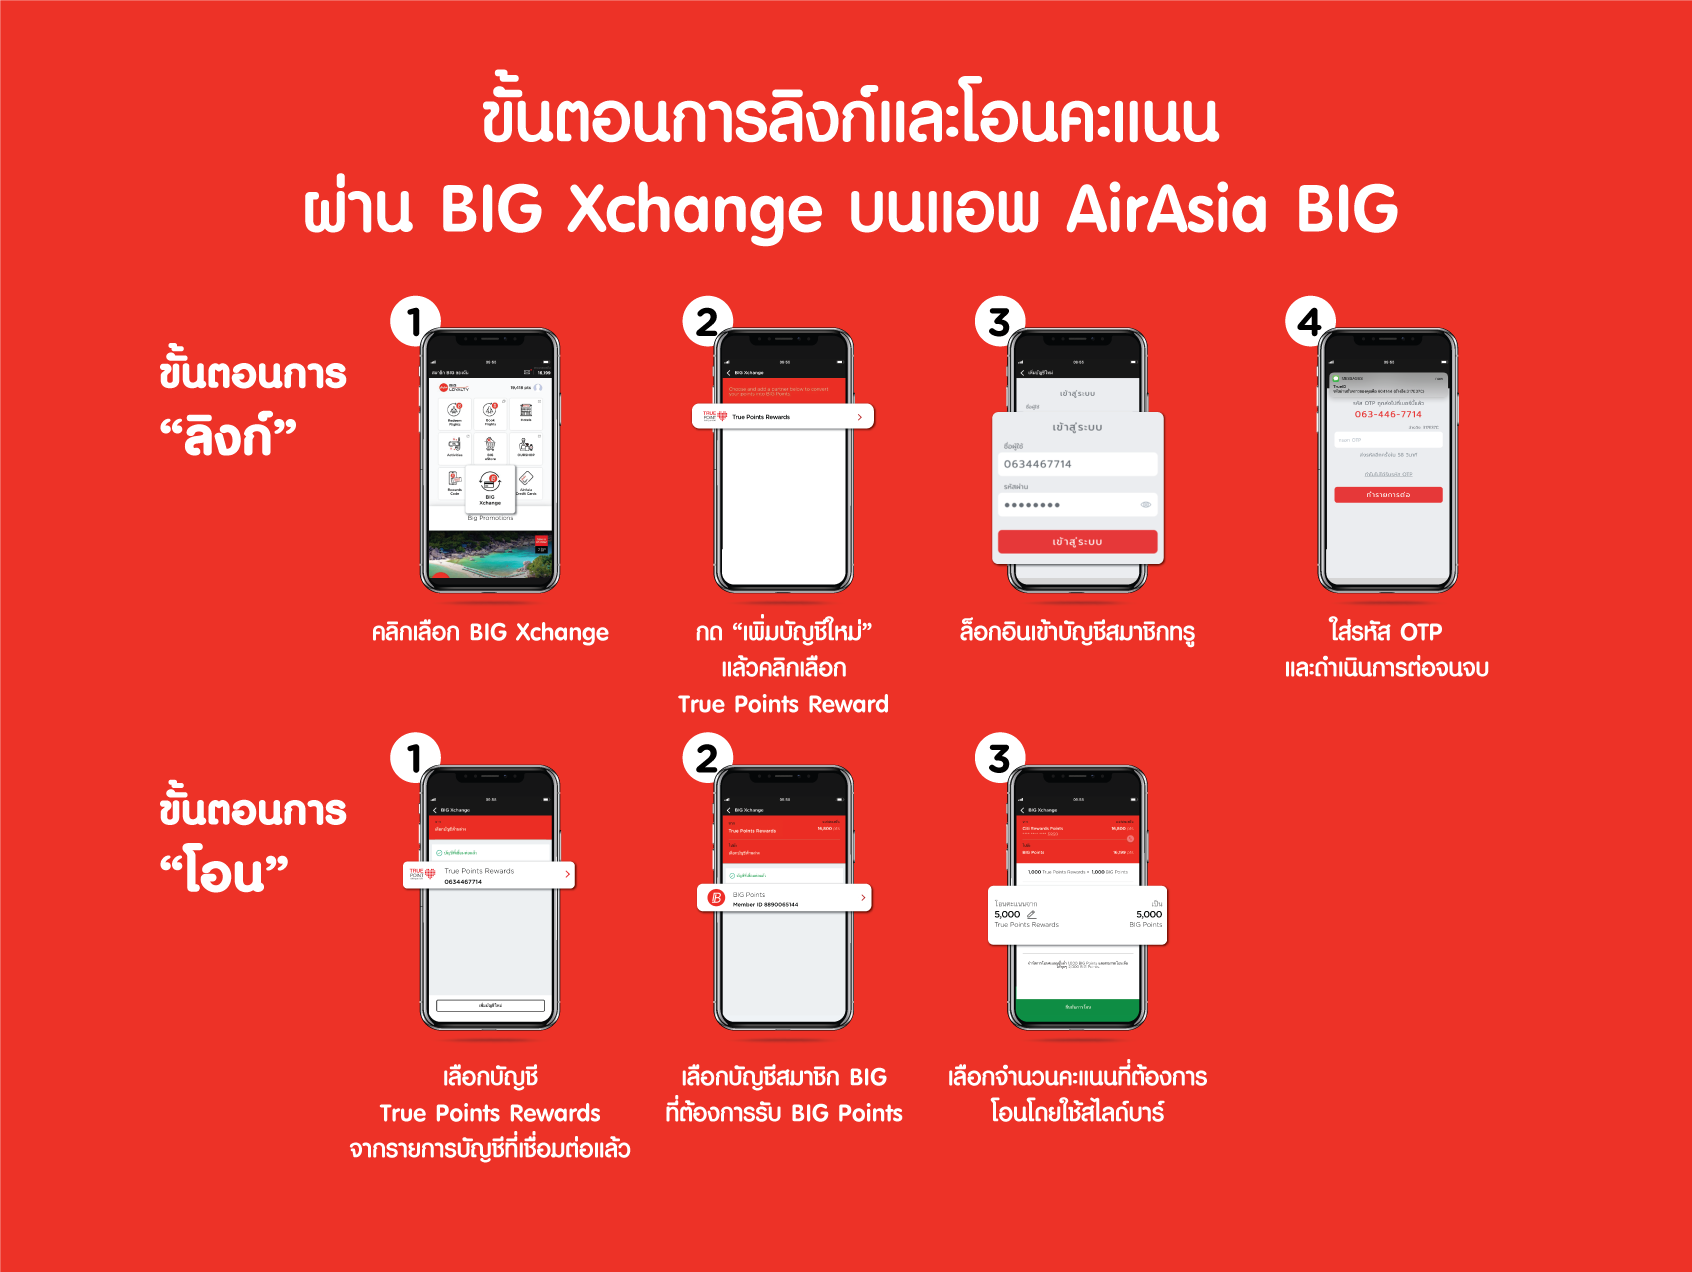 trueyou-procedure-add-transfer-to-airasiabig-big-xchange